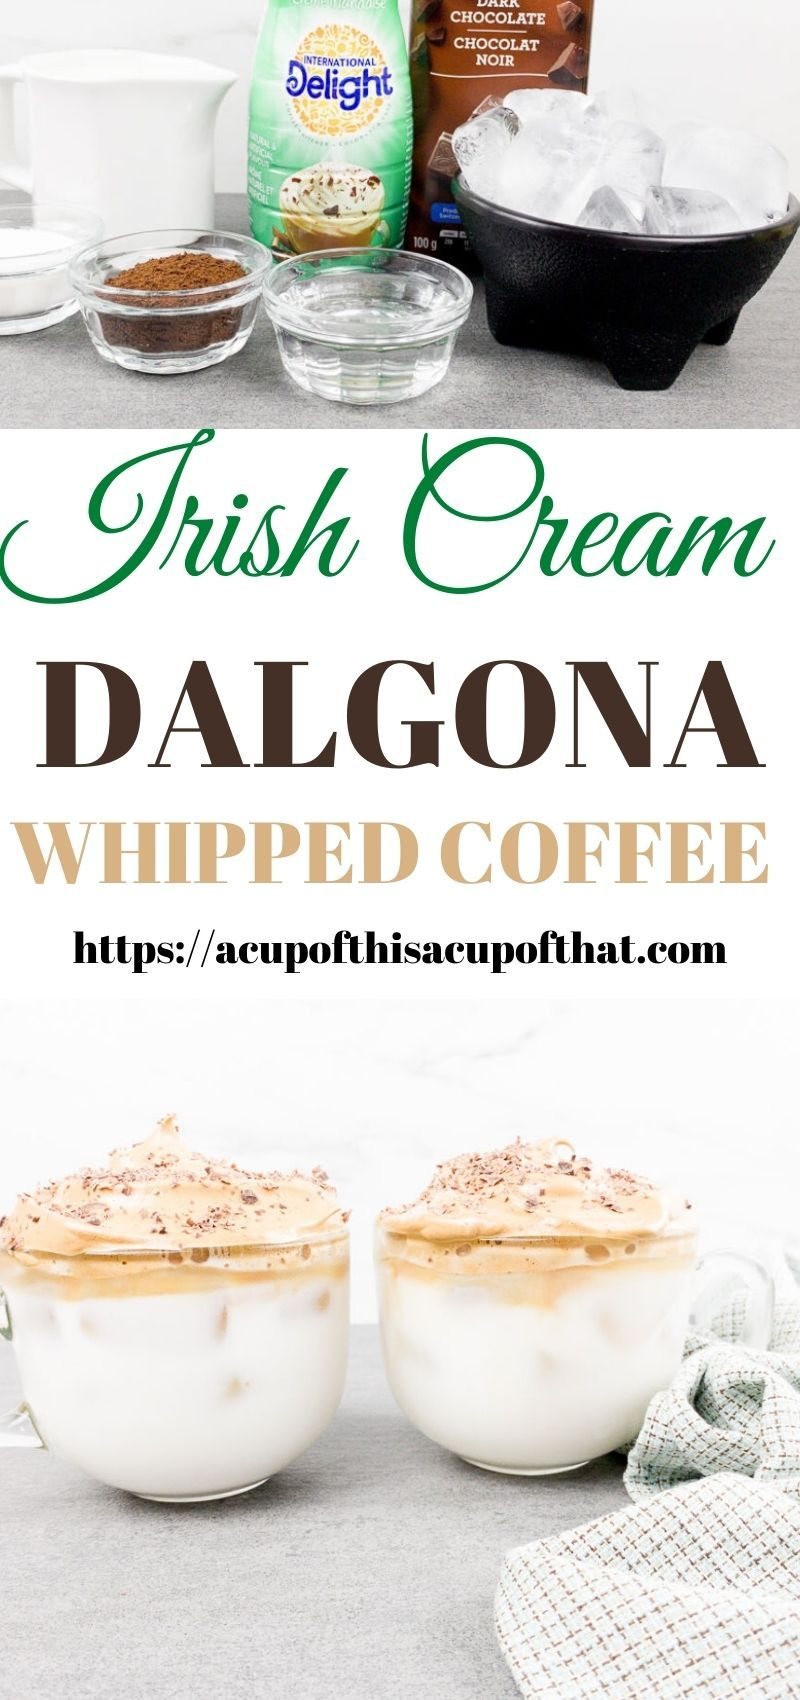 Irish Cream Dalgona Whipped Coffee A Cup Of This A Cup Of That Recipe In 2020 Irish Cream Coffee Recipes Food And Drink